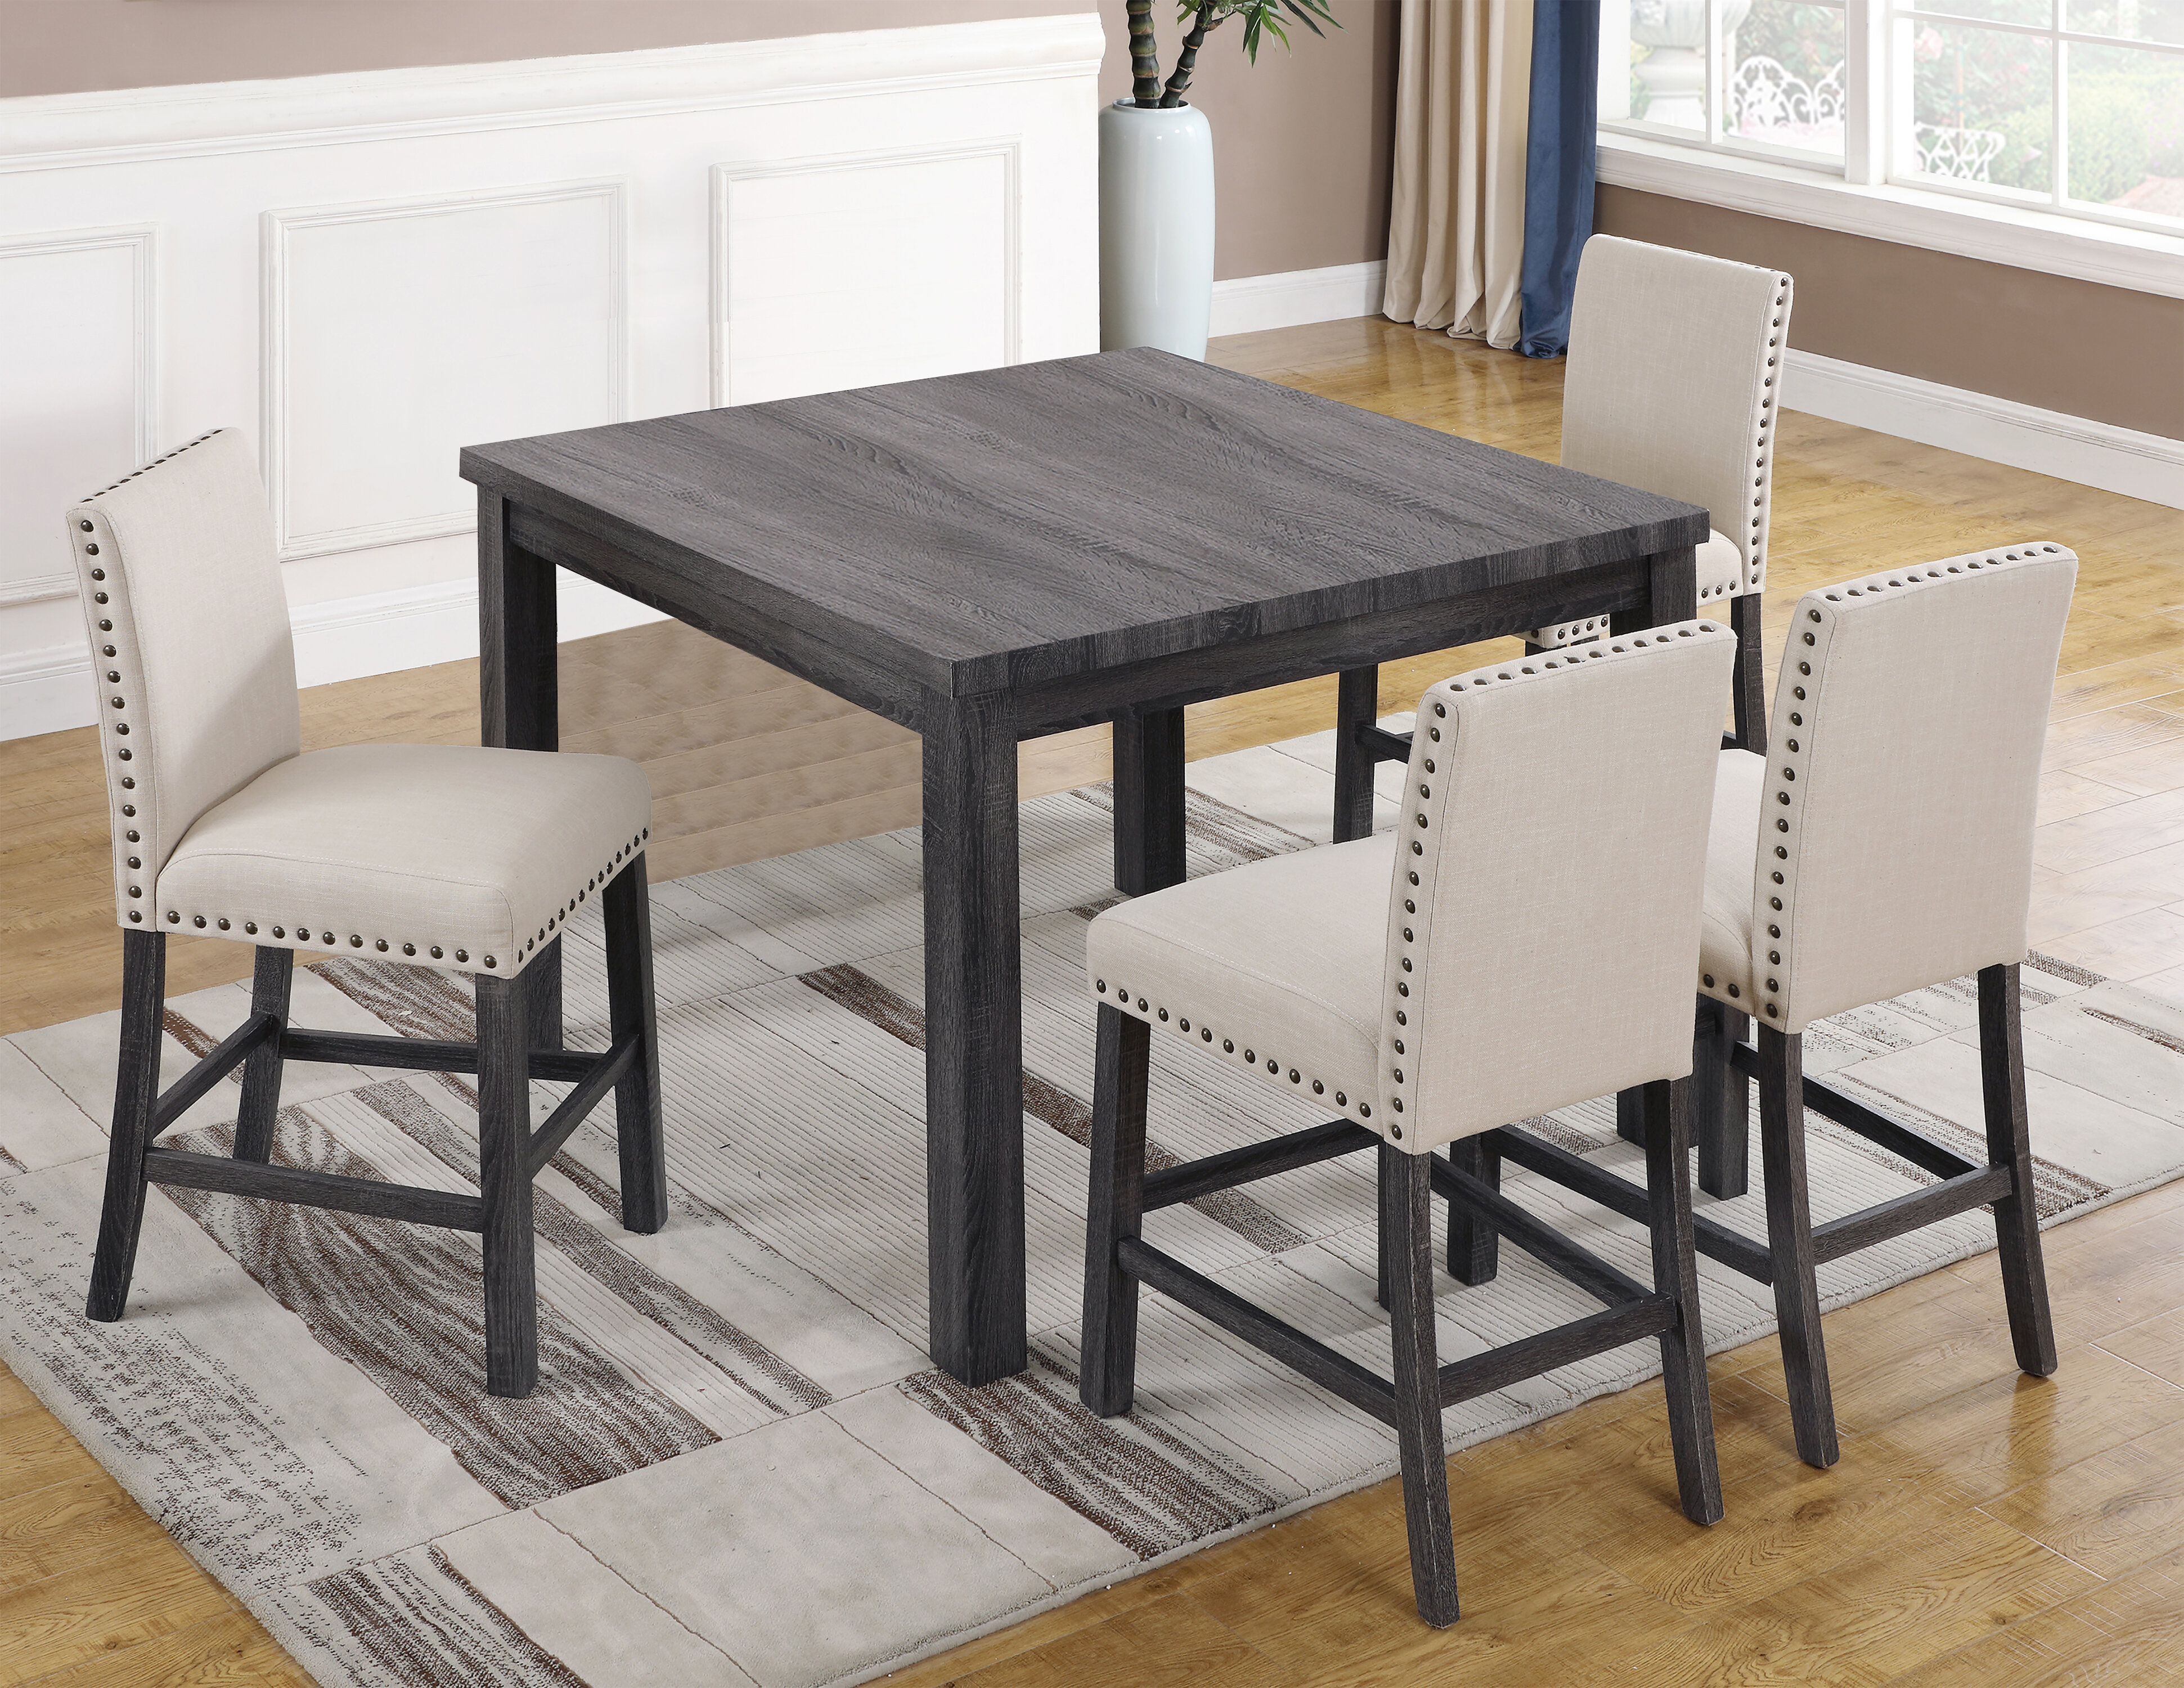 Ralston 5 Piece Counter Height Dining Set Intended For 2018 Queener 5 Piece Dining Sets (Photo 9 of 20)